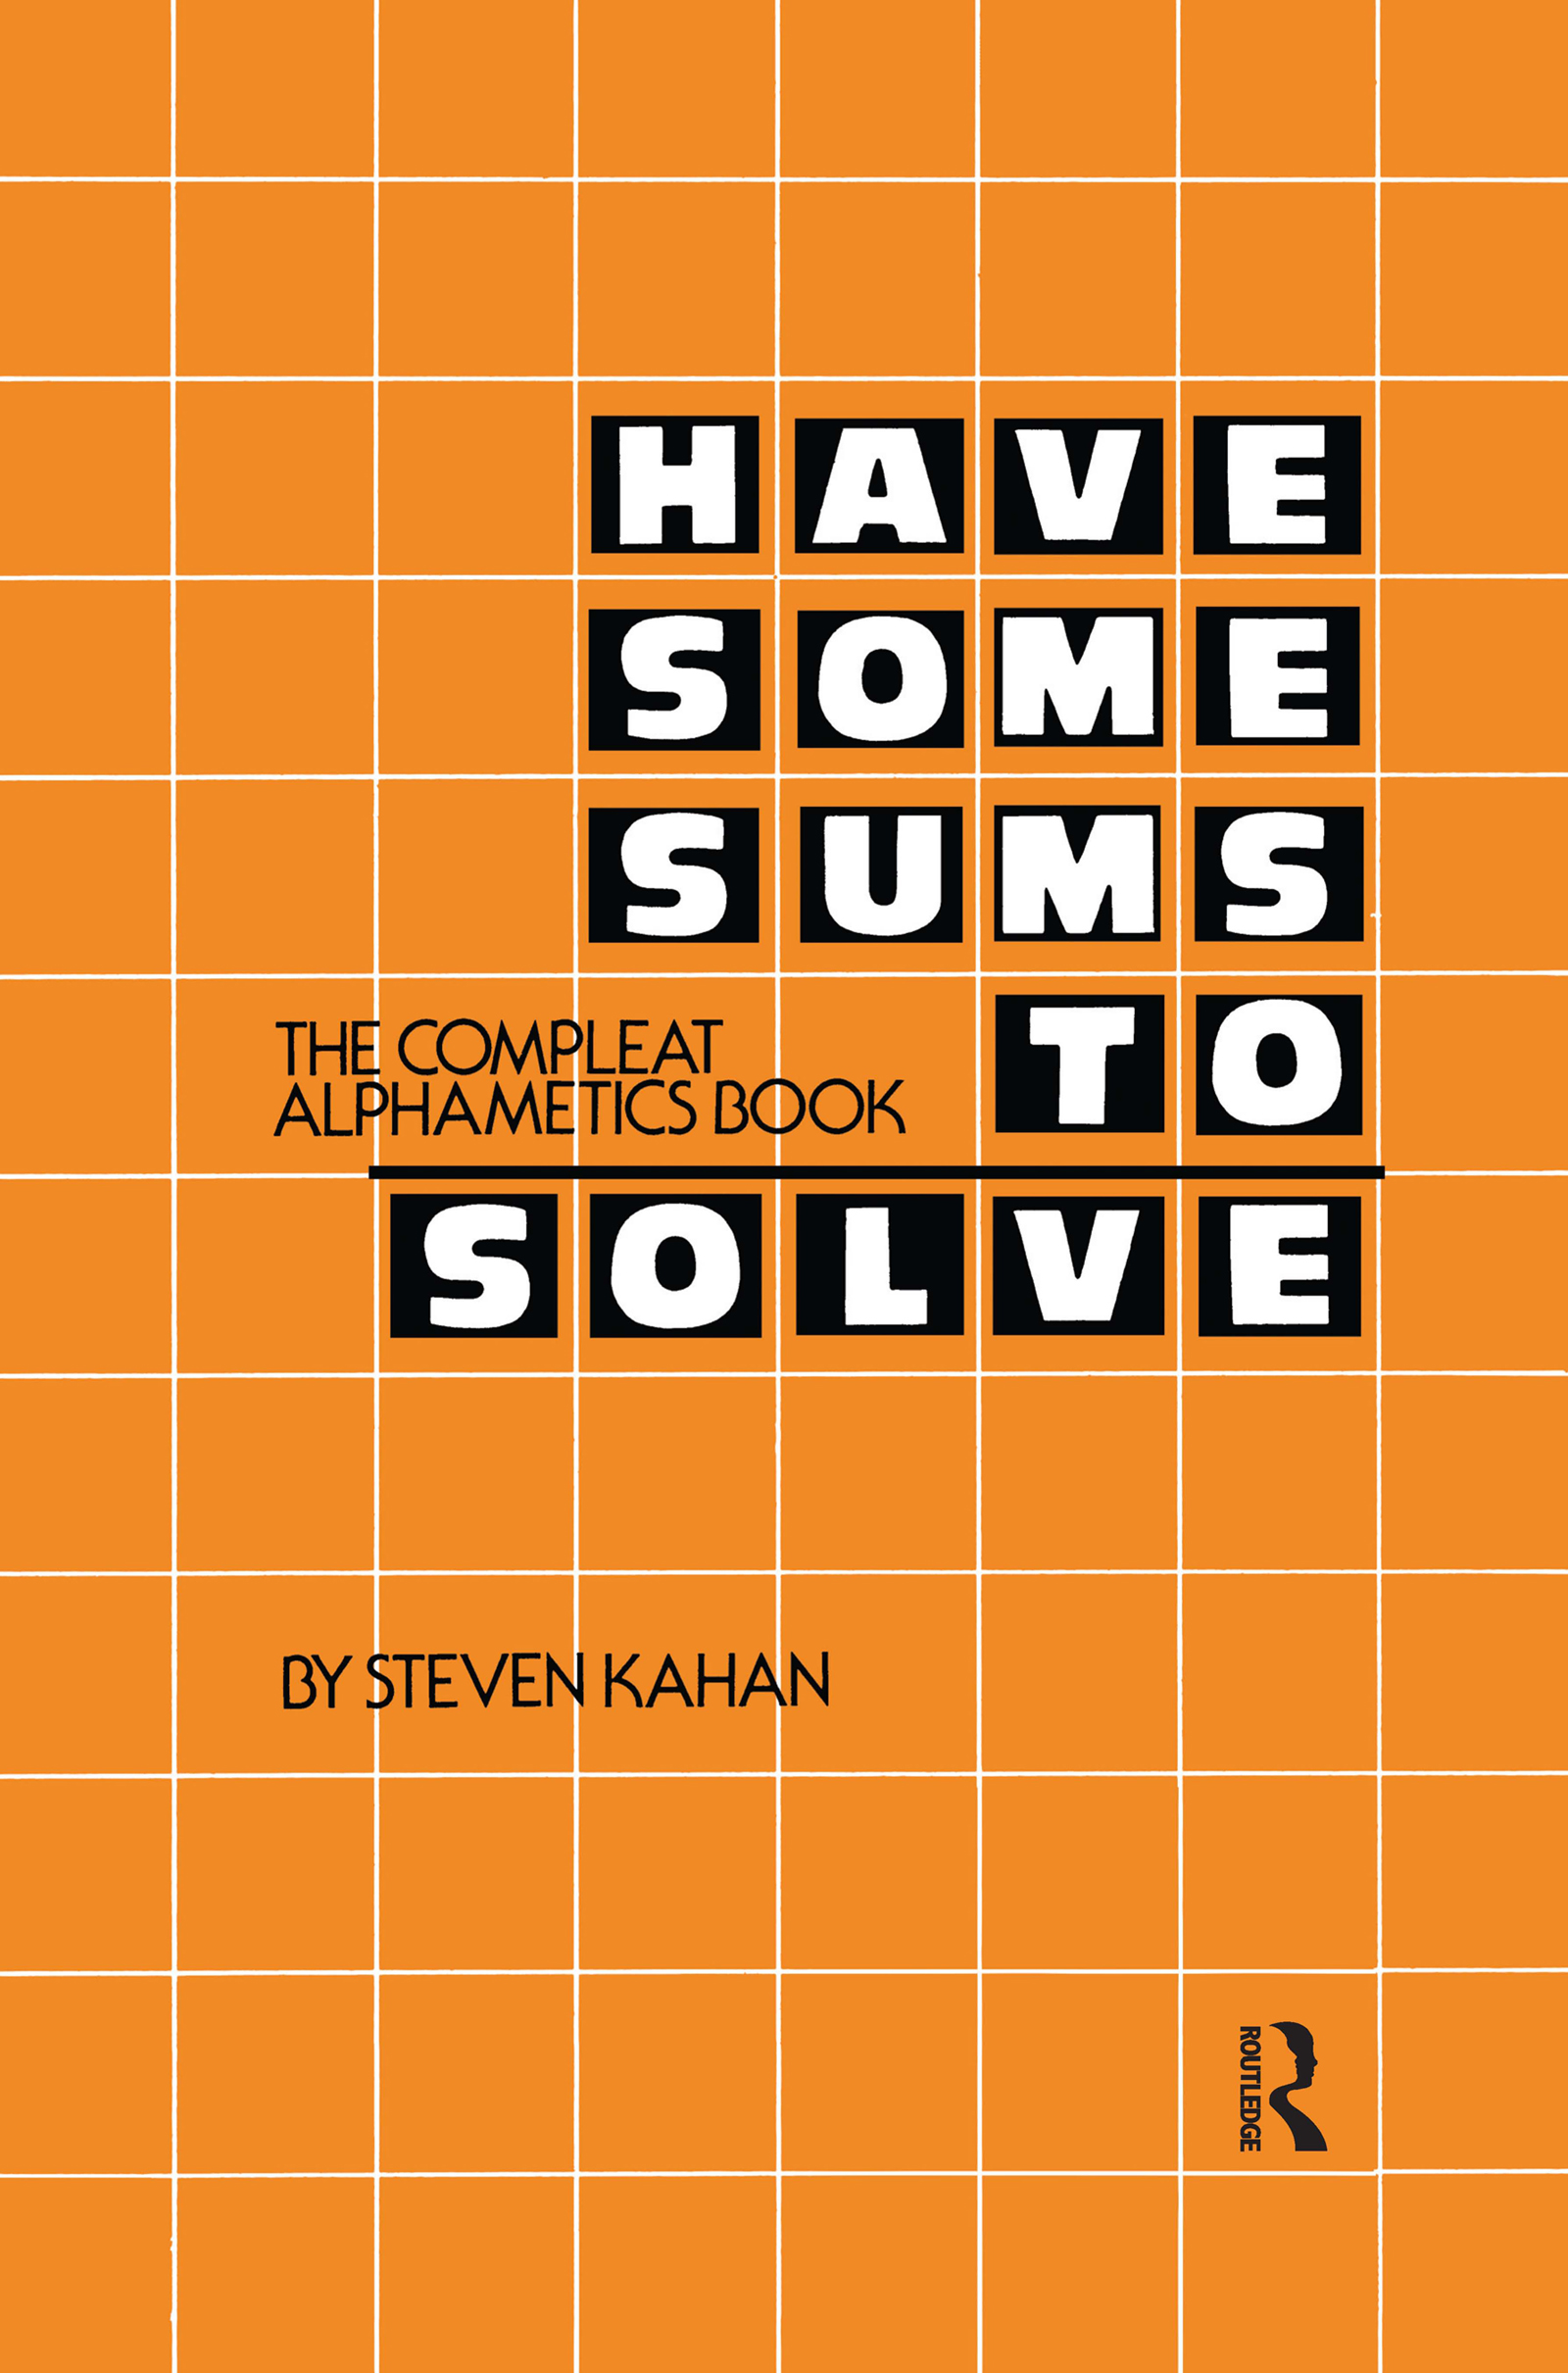 Have Some Sums to Solve: The Compleat Alphametics Book, 1st Edition (Paperback) book cover